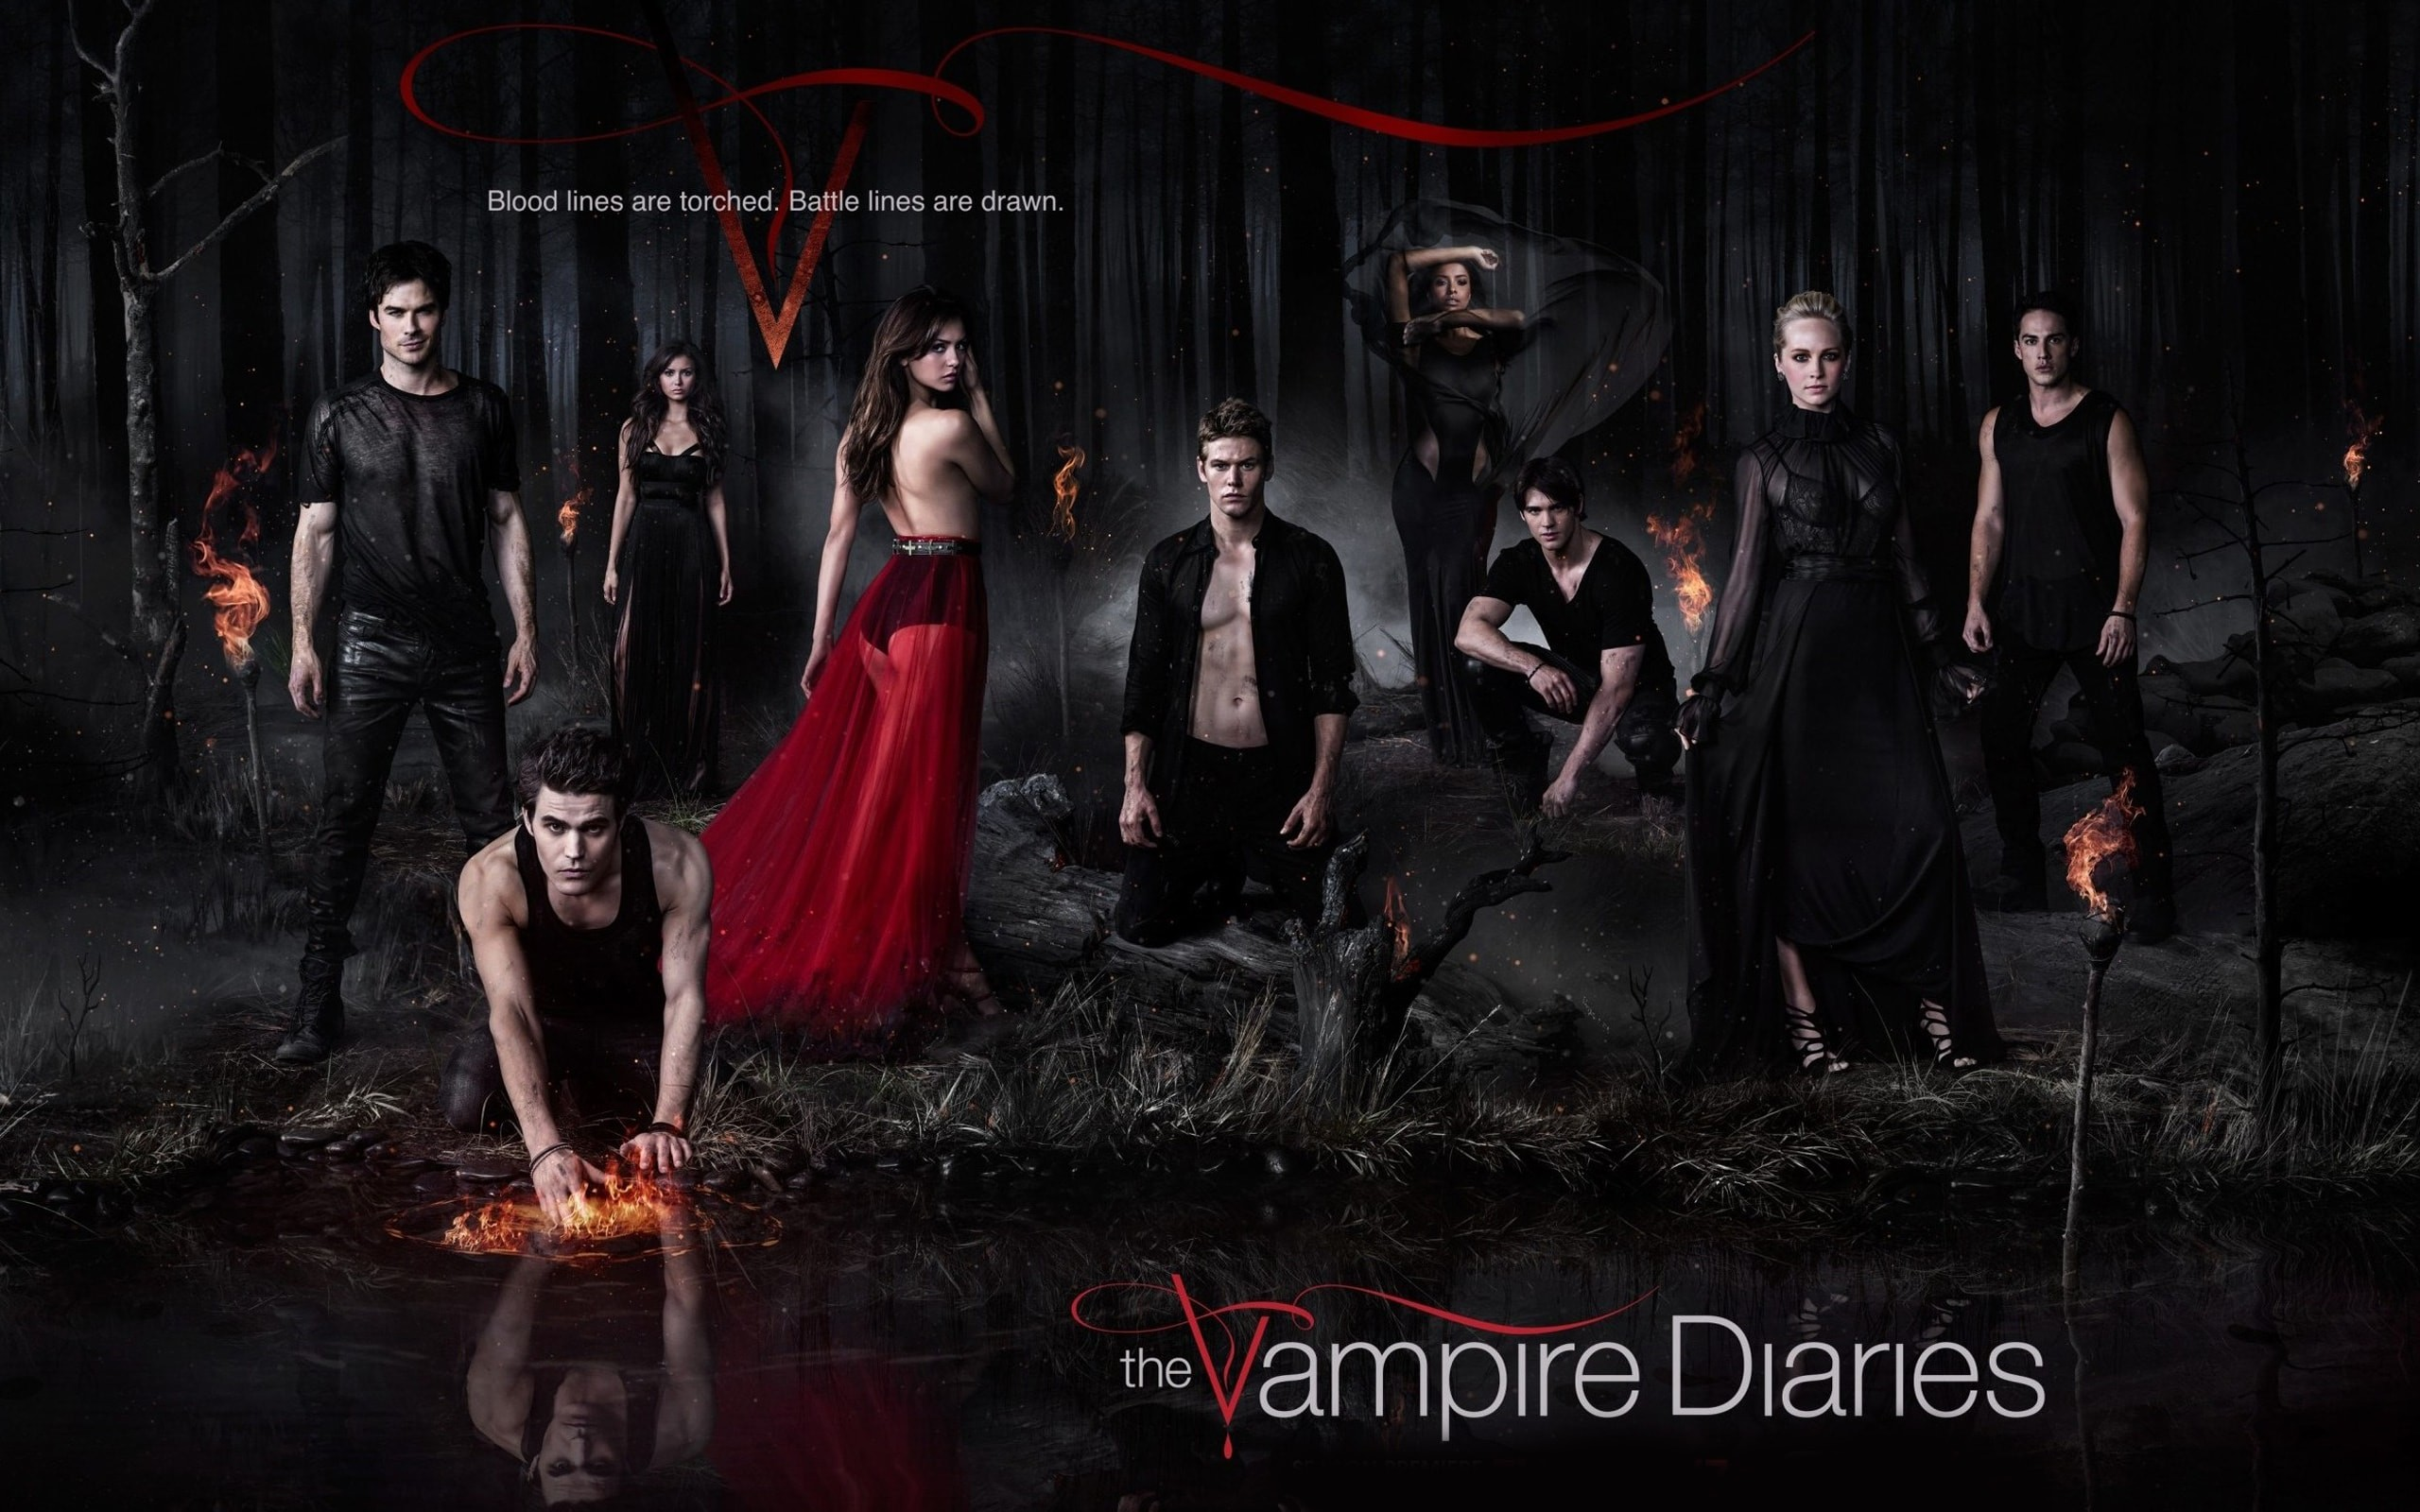 2560x1600 The Vampire Diaries widescreen wallpapers The Vampire Diaries Pictures